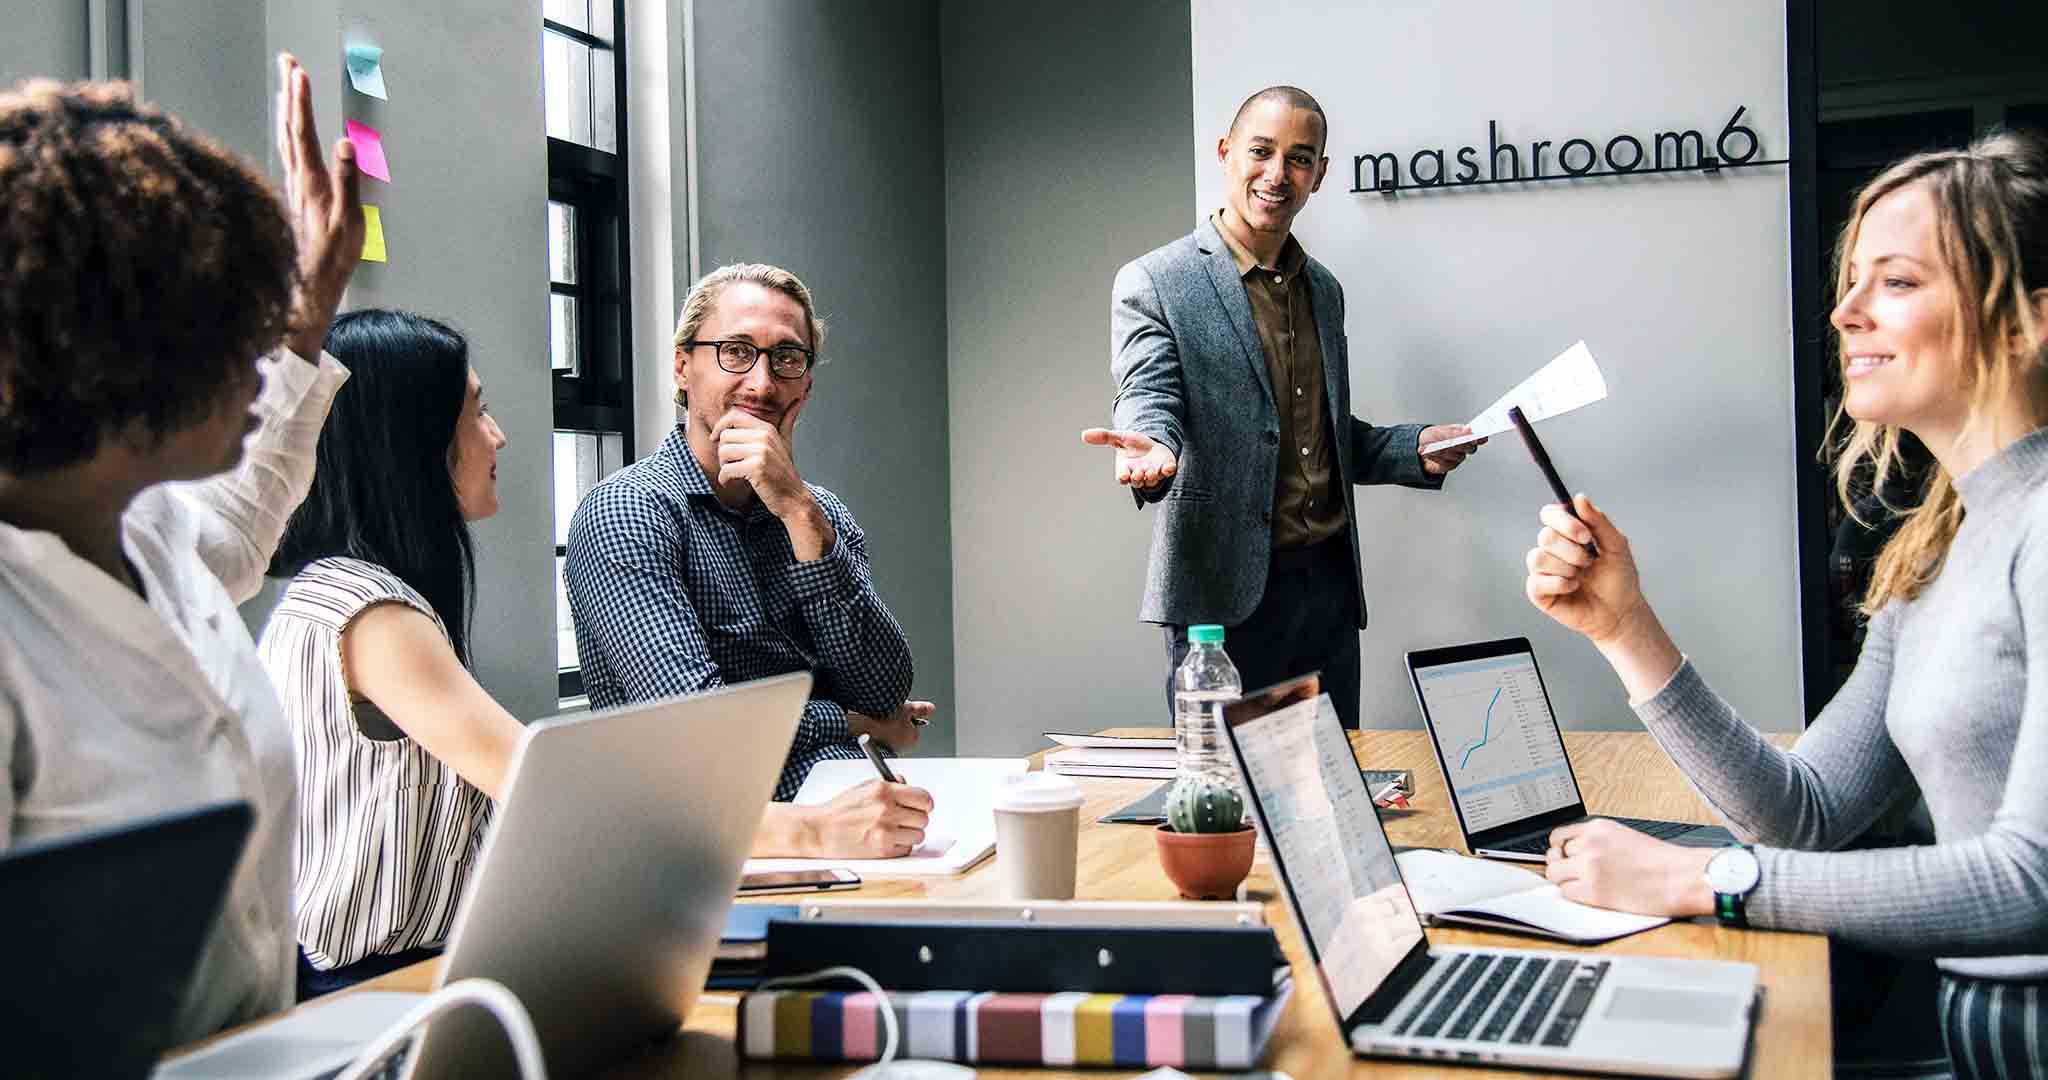 colleagues digital device discussion presentation stock photography